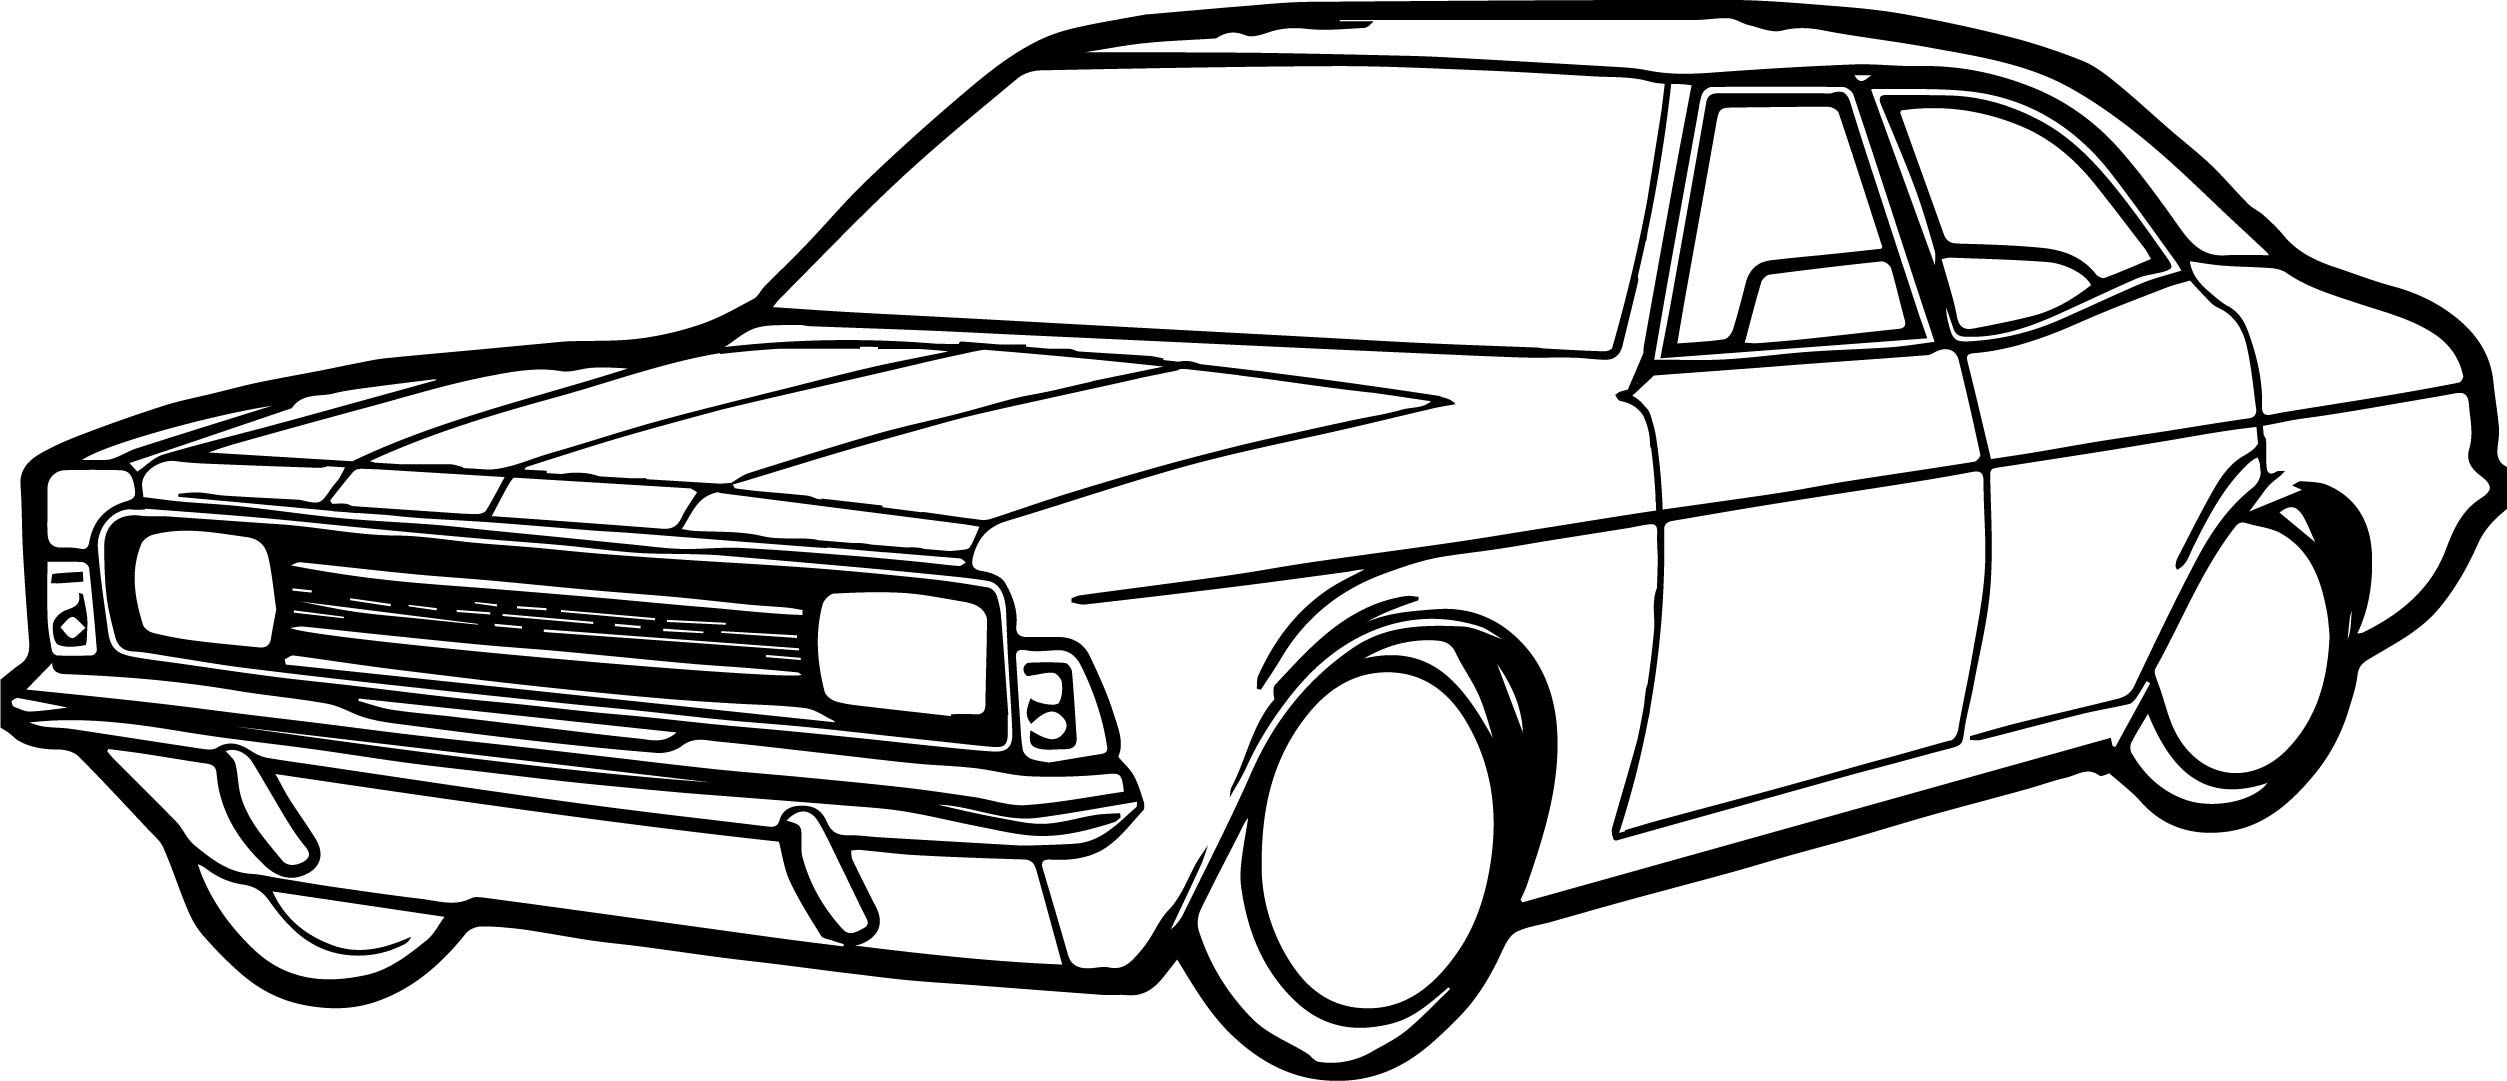 Antique Car Coloring Pages : Vintage antique car coloring page wecoloringpage